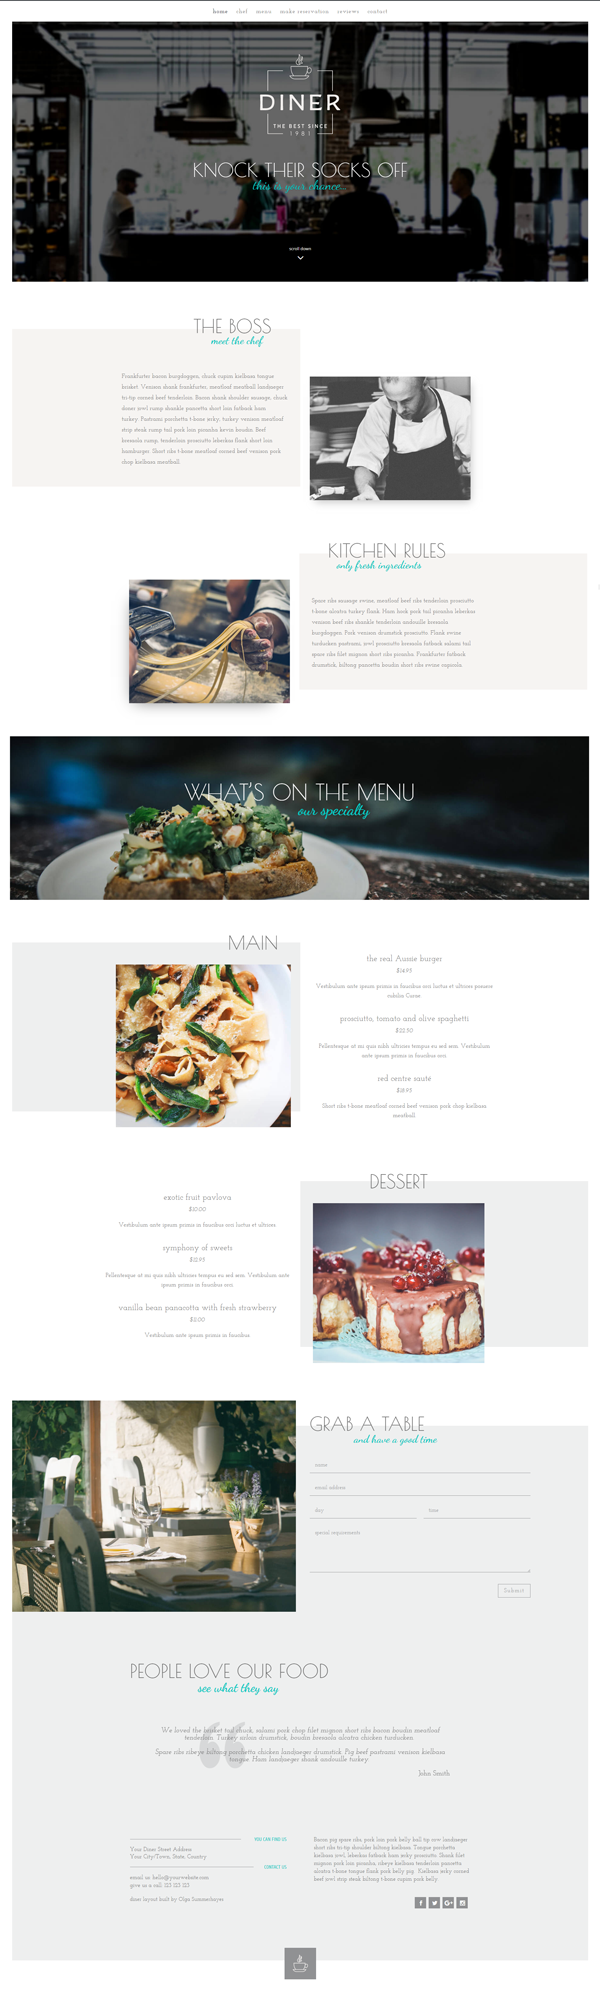 Diner-Layout-image-for-blog